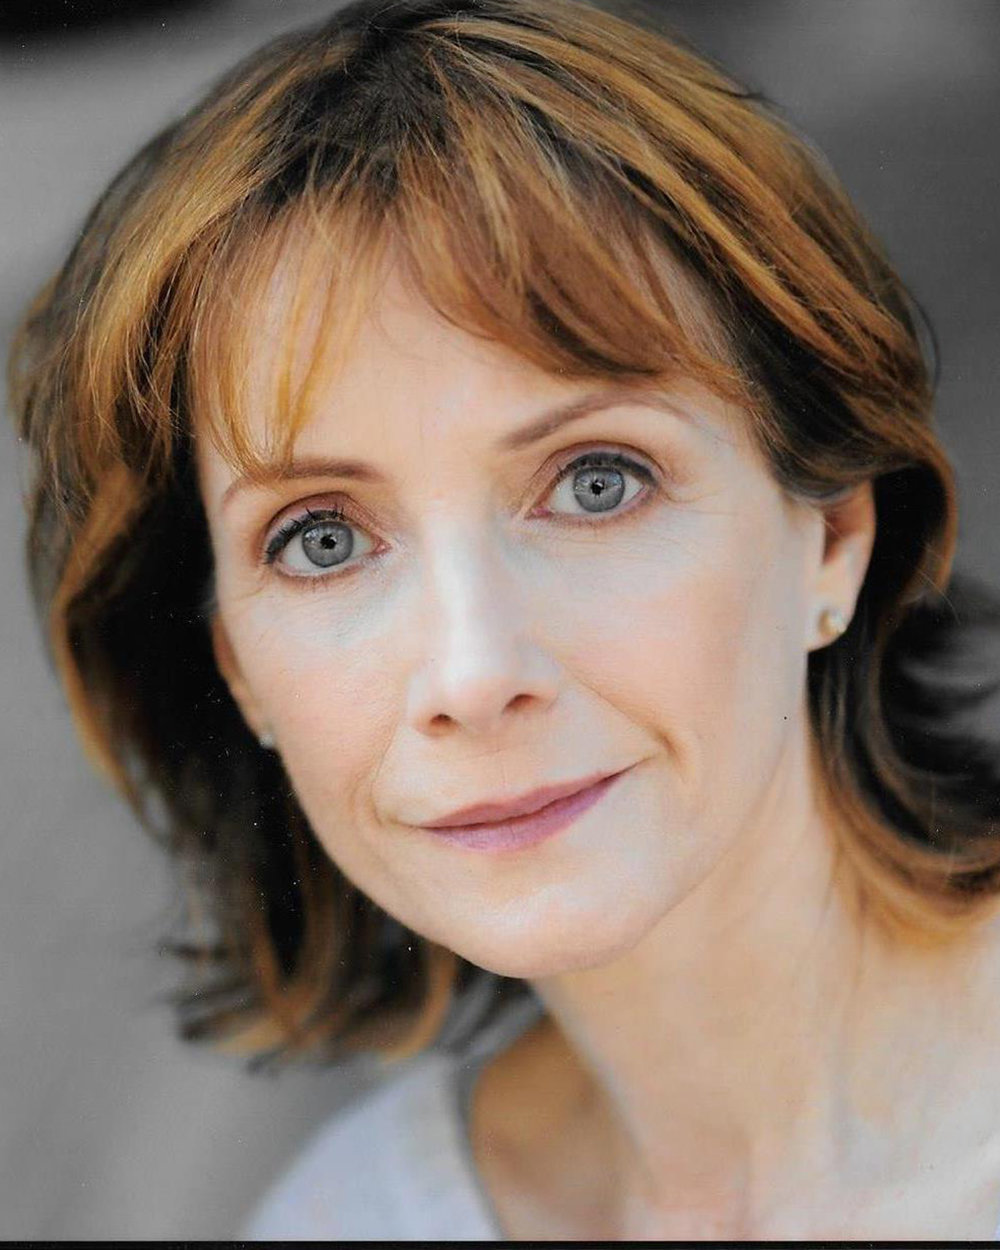 "SUSANNA FRAZER as Janet, Veronica's mother - Bway: The Nerd, Stepping Out, Off Bway includes: Soho Rep, Ensemble Studio Theatre, Atlantic Theater, York Theatre Co., The Lark.  Regional: Kennedy Center, Fulton Opera House, Cuillo Ctr-WPB, Queens Theatre and tours. TV: ""Law and Orders"", ""The OA"", ""Friends From College"" on Netflix. AEA, SAG-AFTRA, Dramatists Guild and SDC. www.susannafrazer.com"